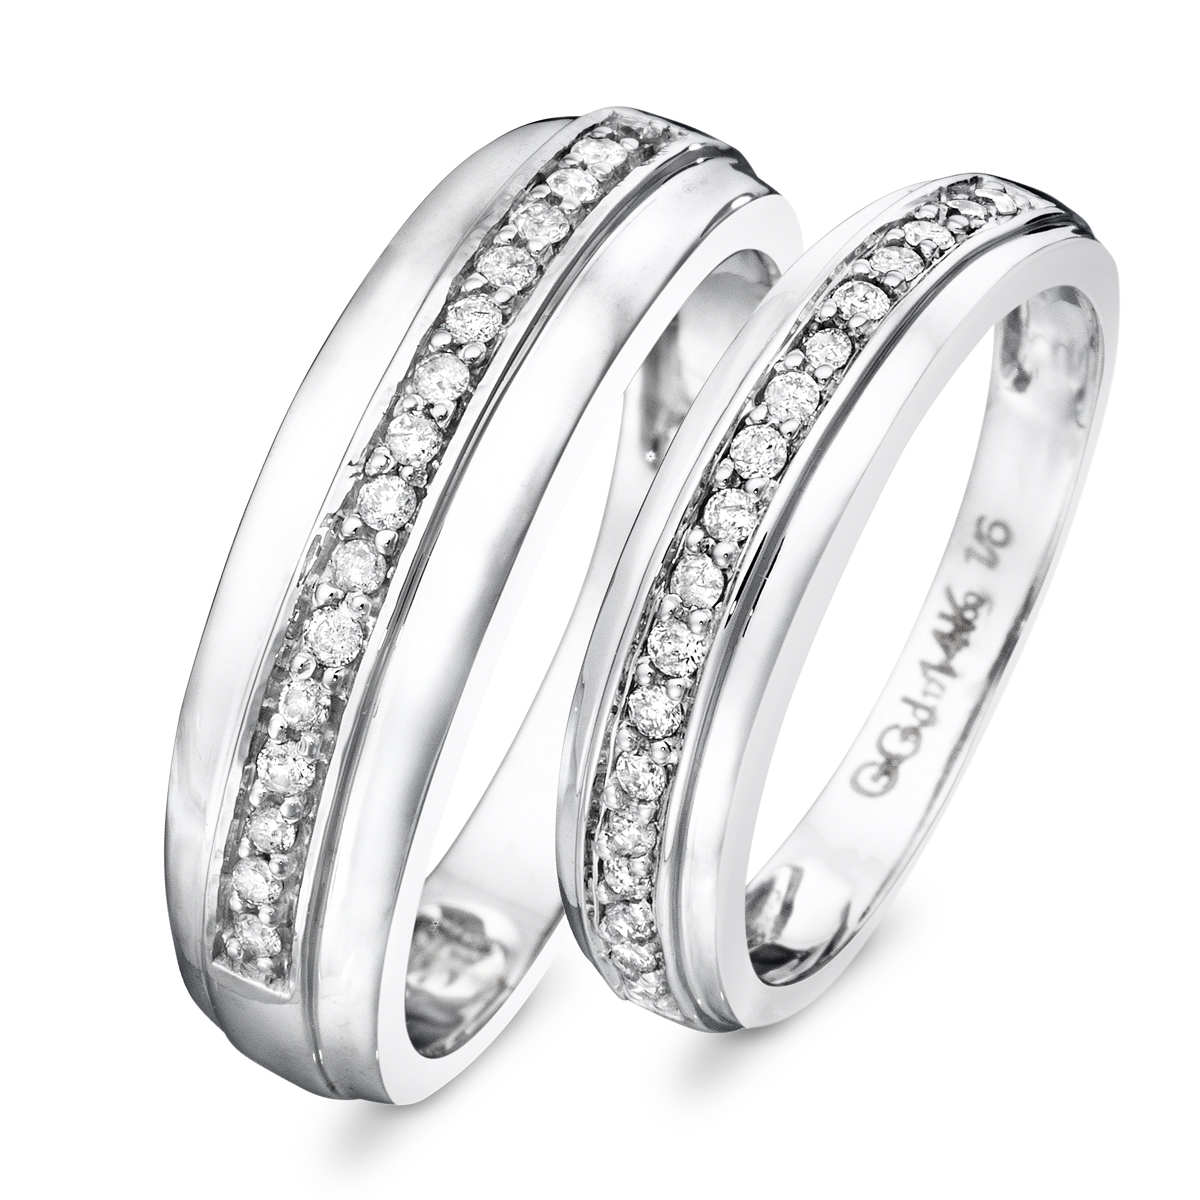 1 1 3 CT TW Diamond His And Hers Wedding Rings 14K